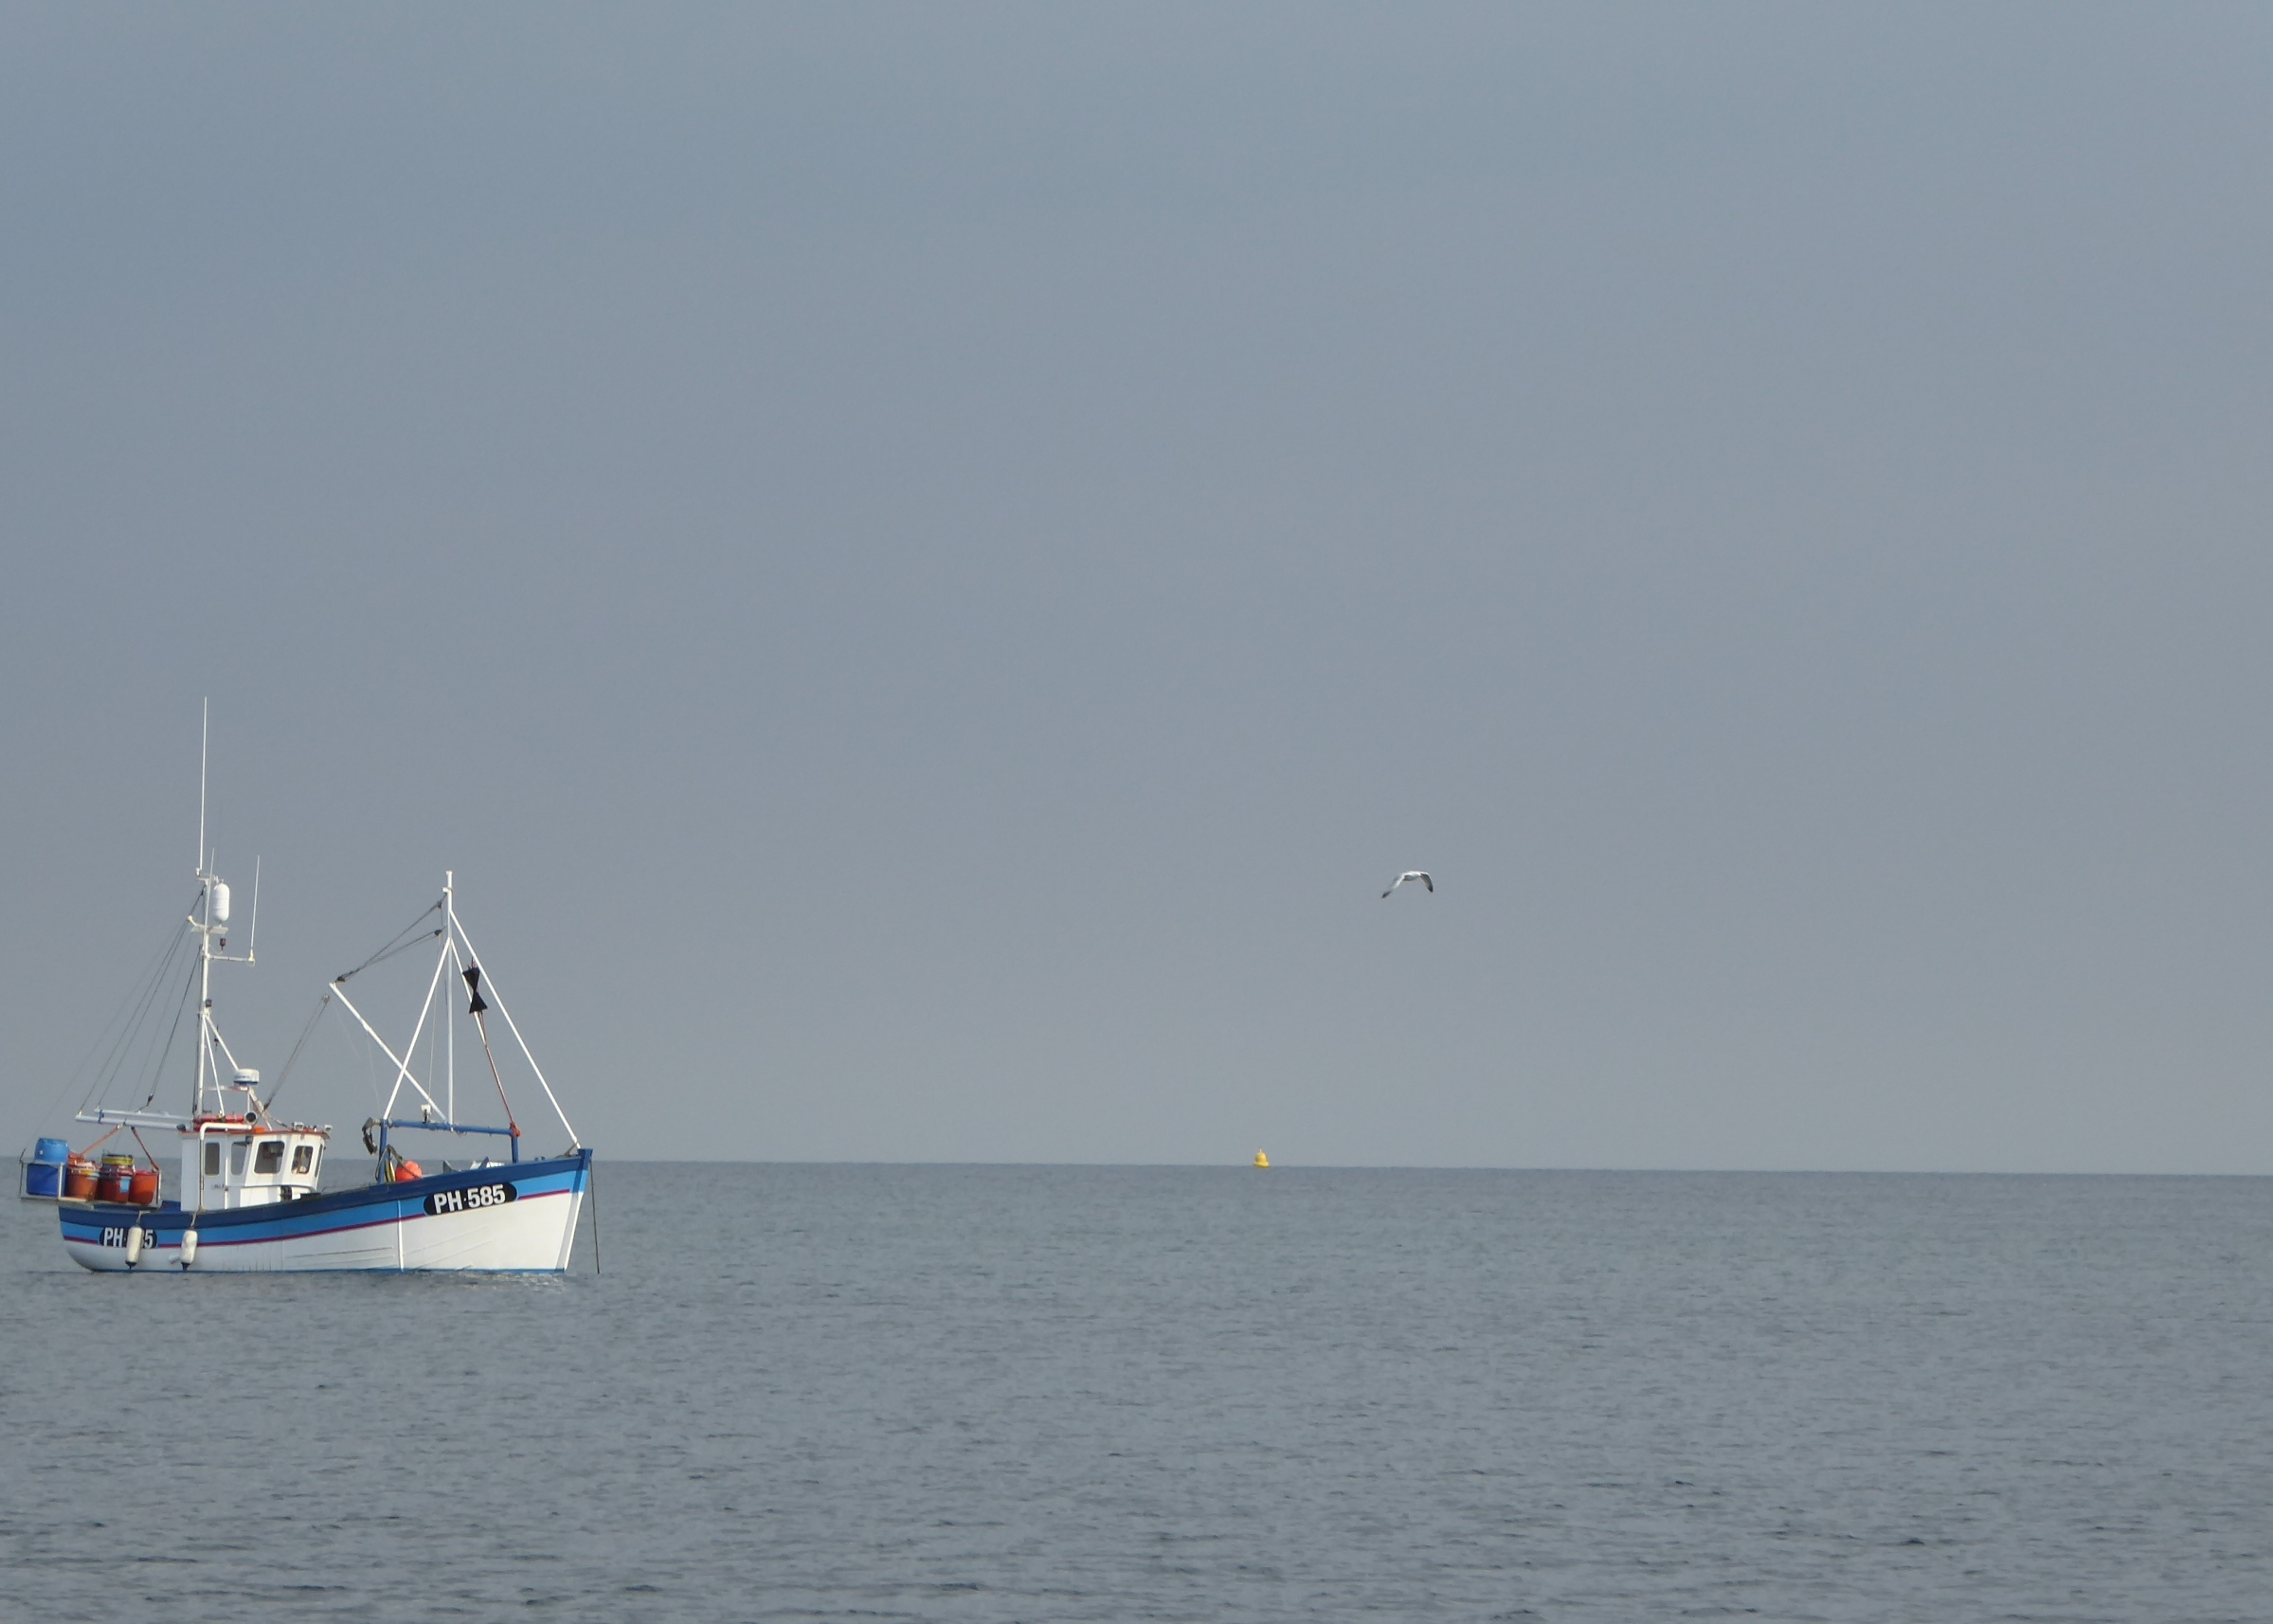 Trawler off Kingsand and Cawsand